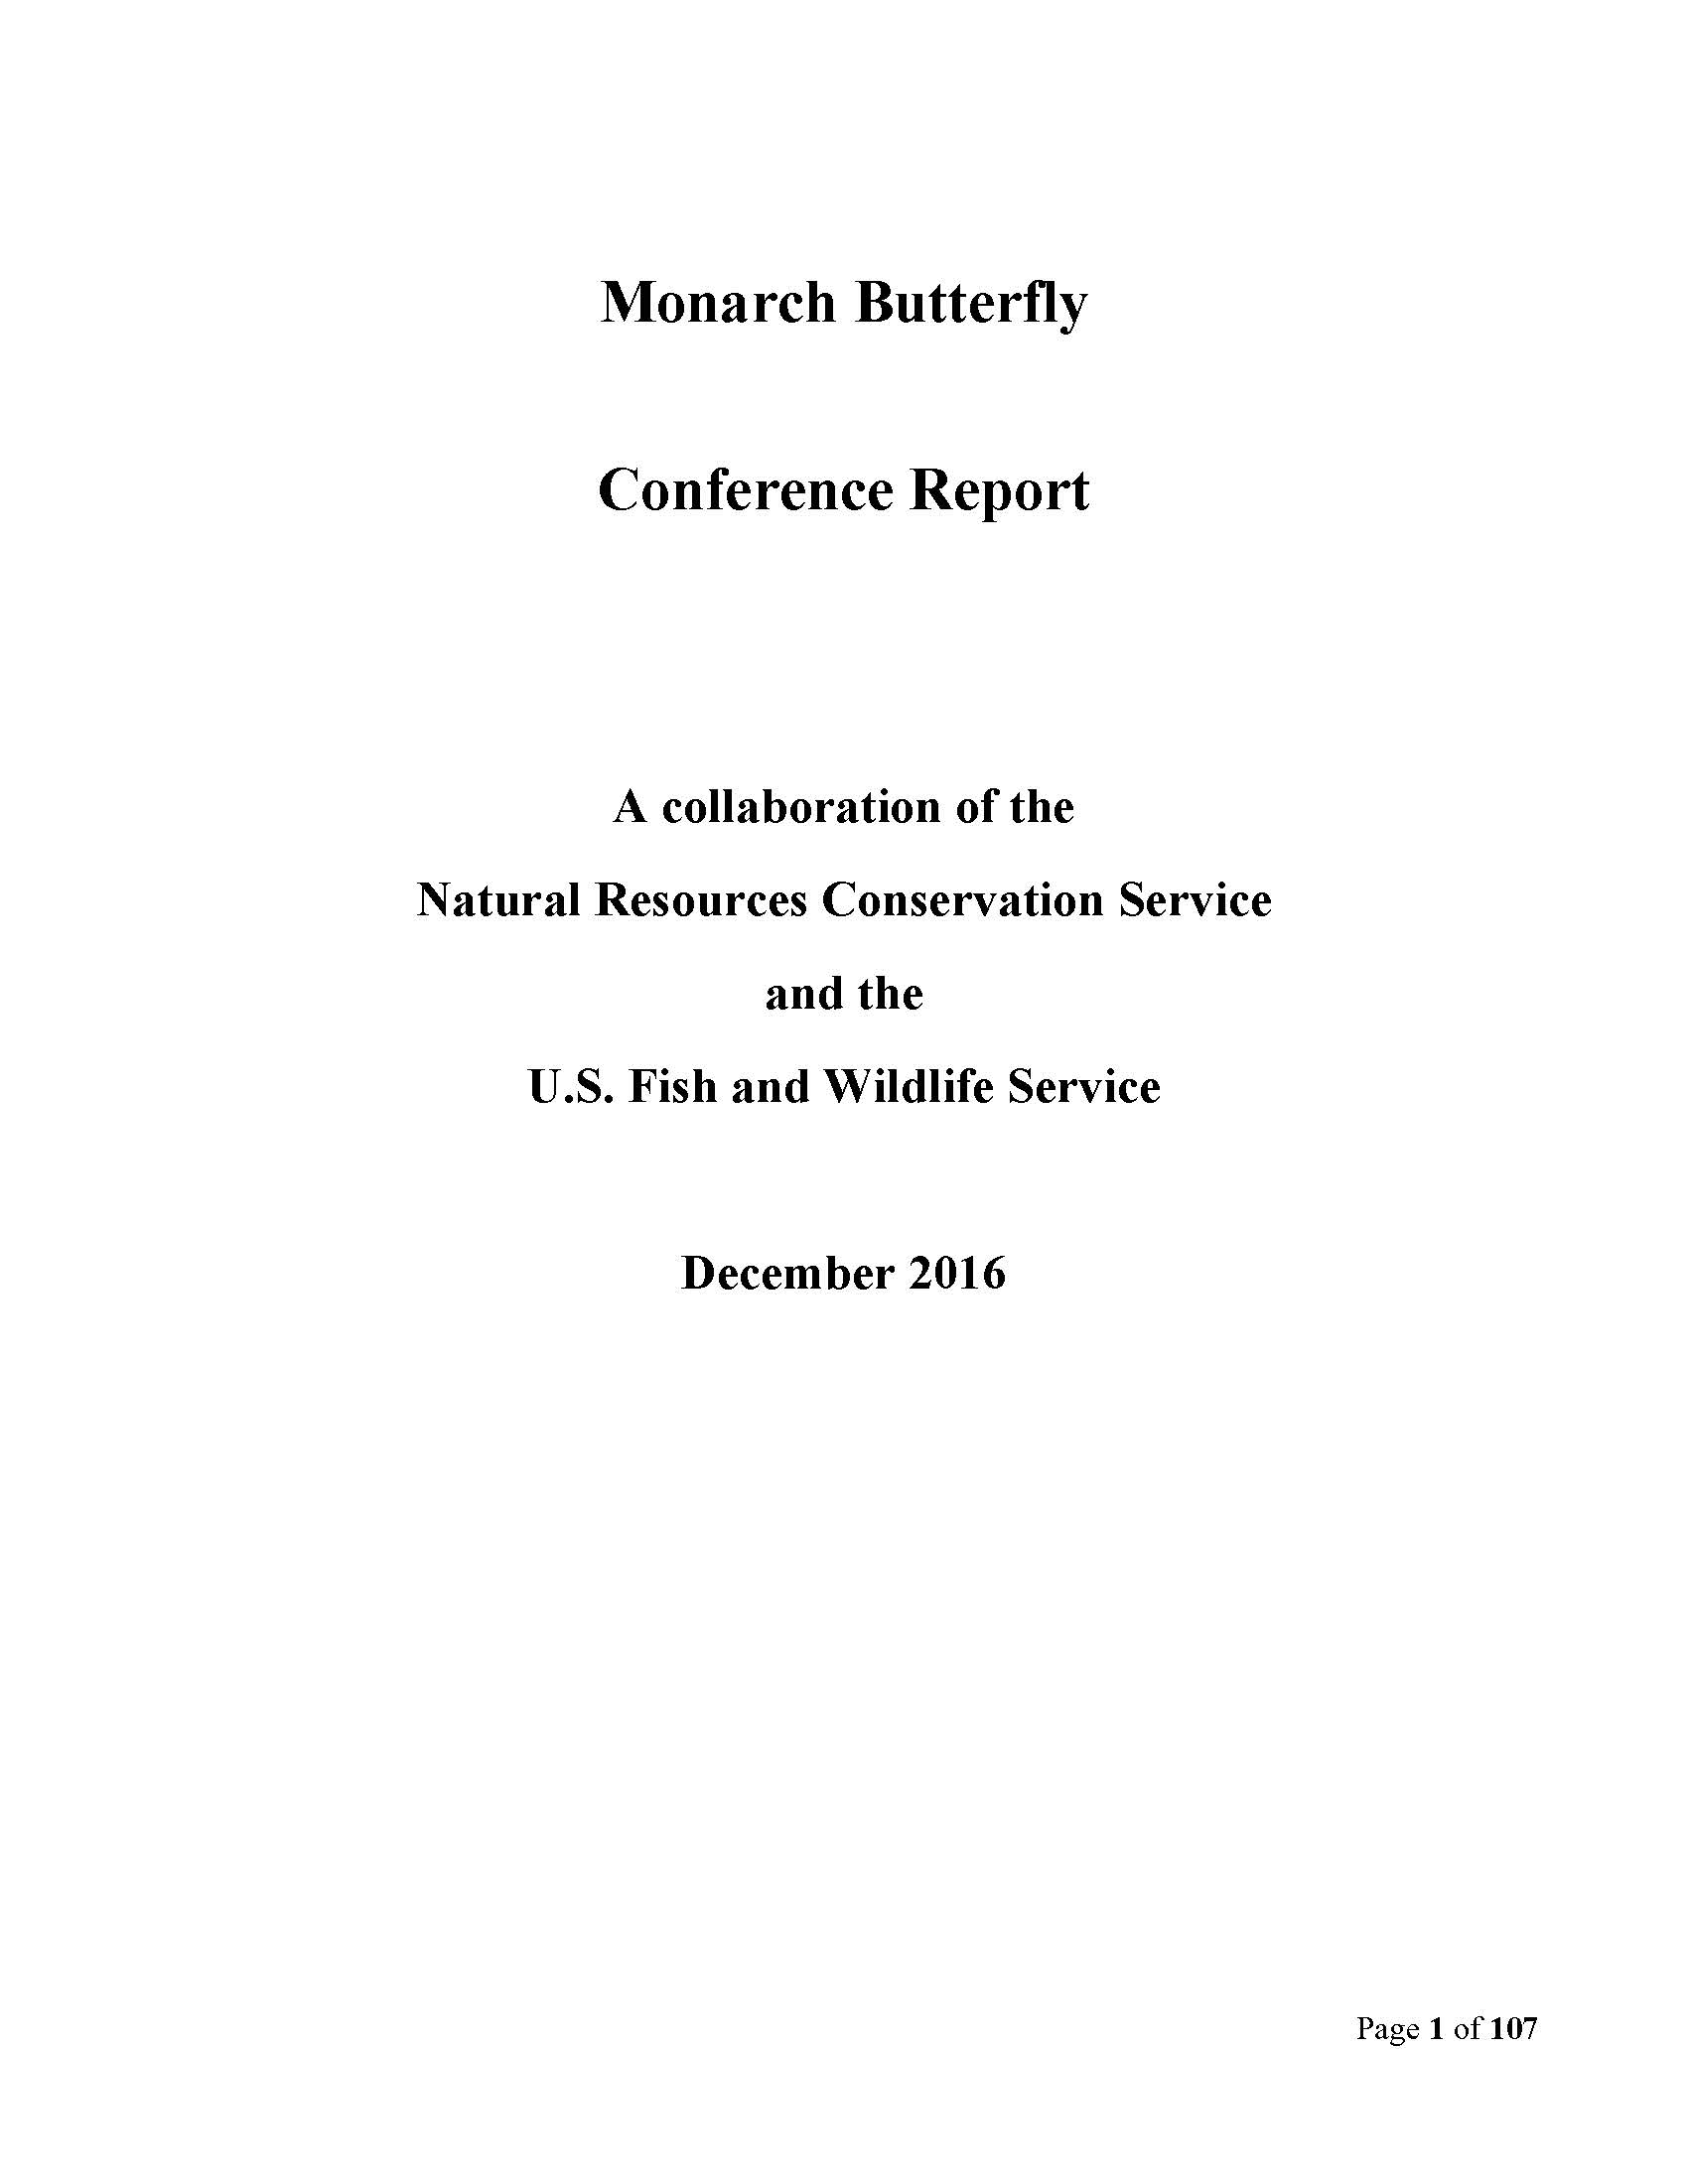 Nrcs usfws partner to accelerate conservation on agricultural monarch conference report image sciox Image collections